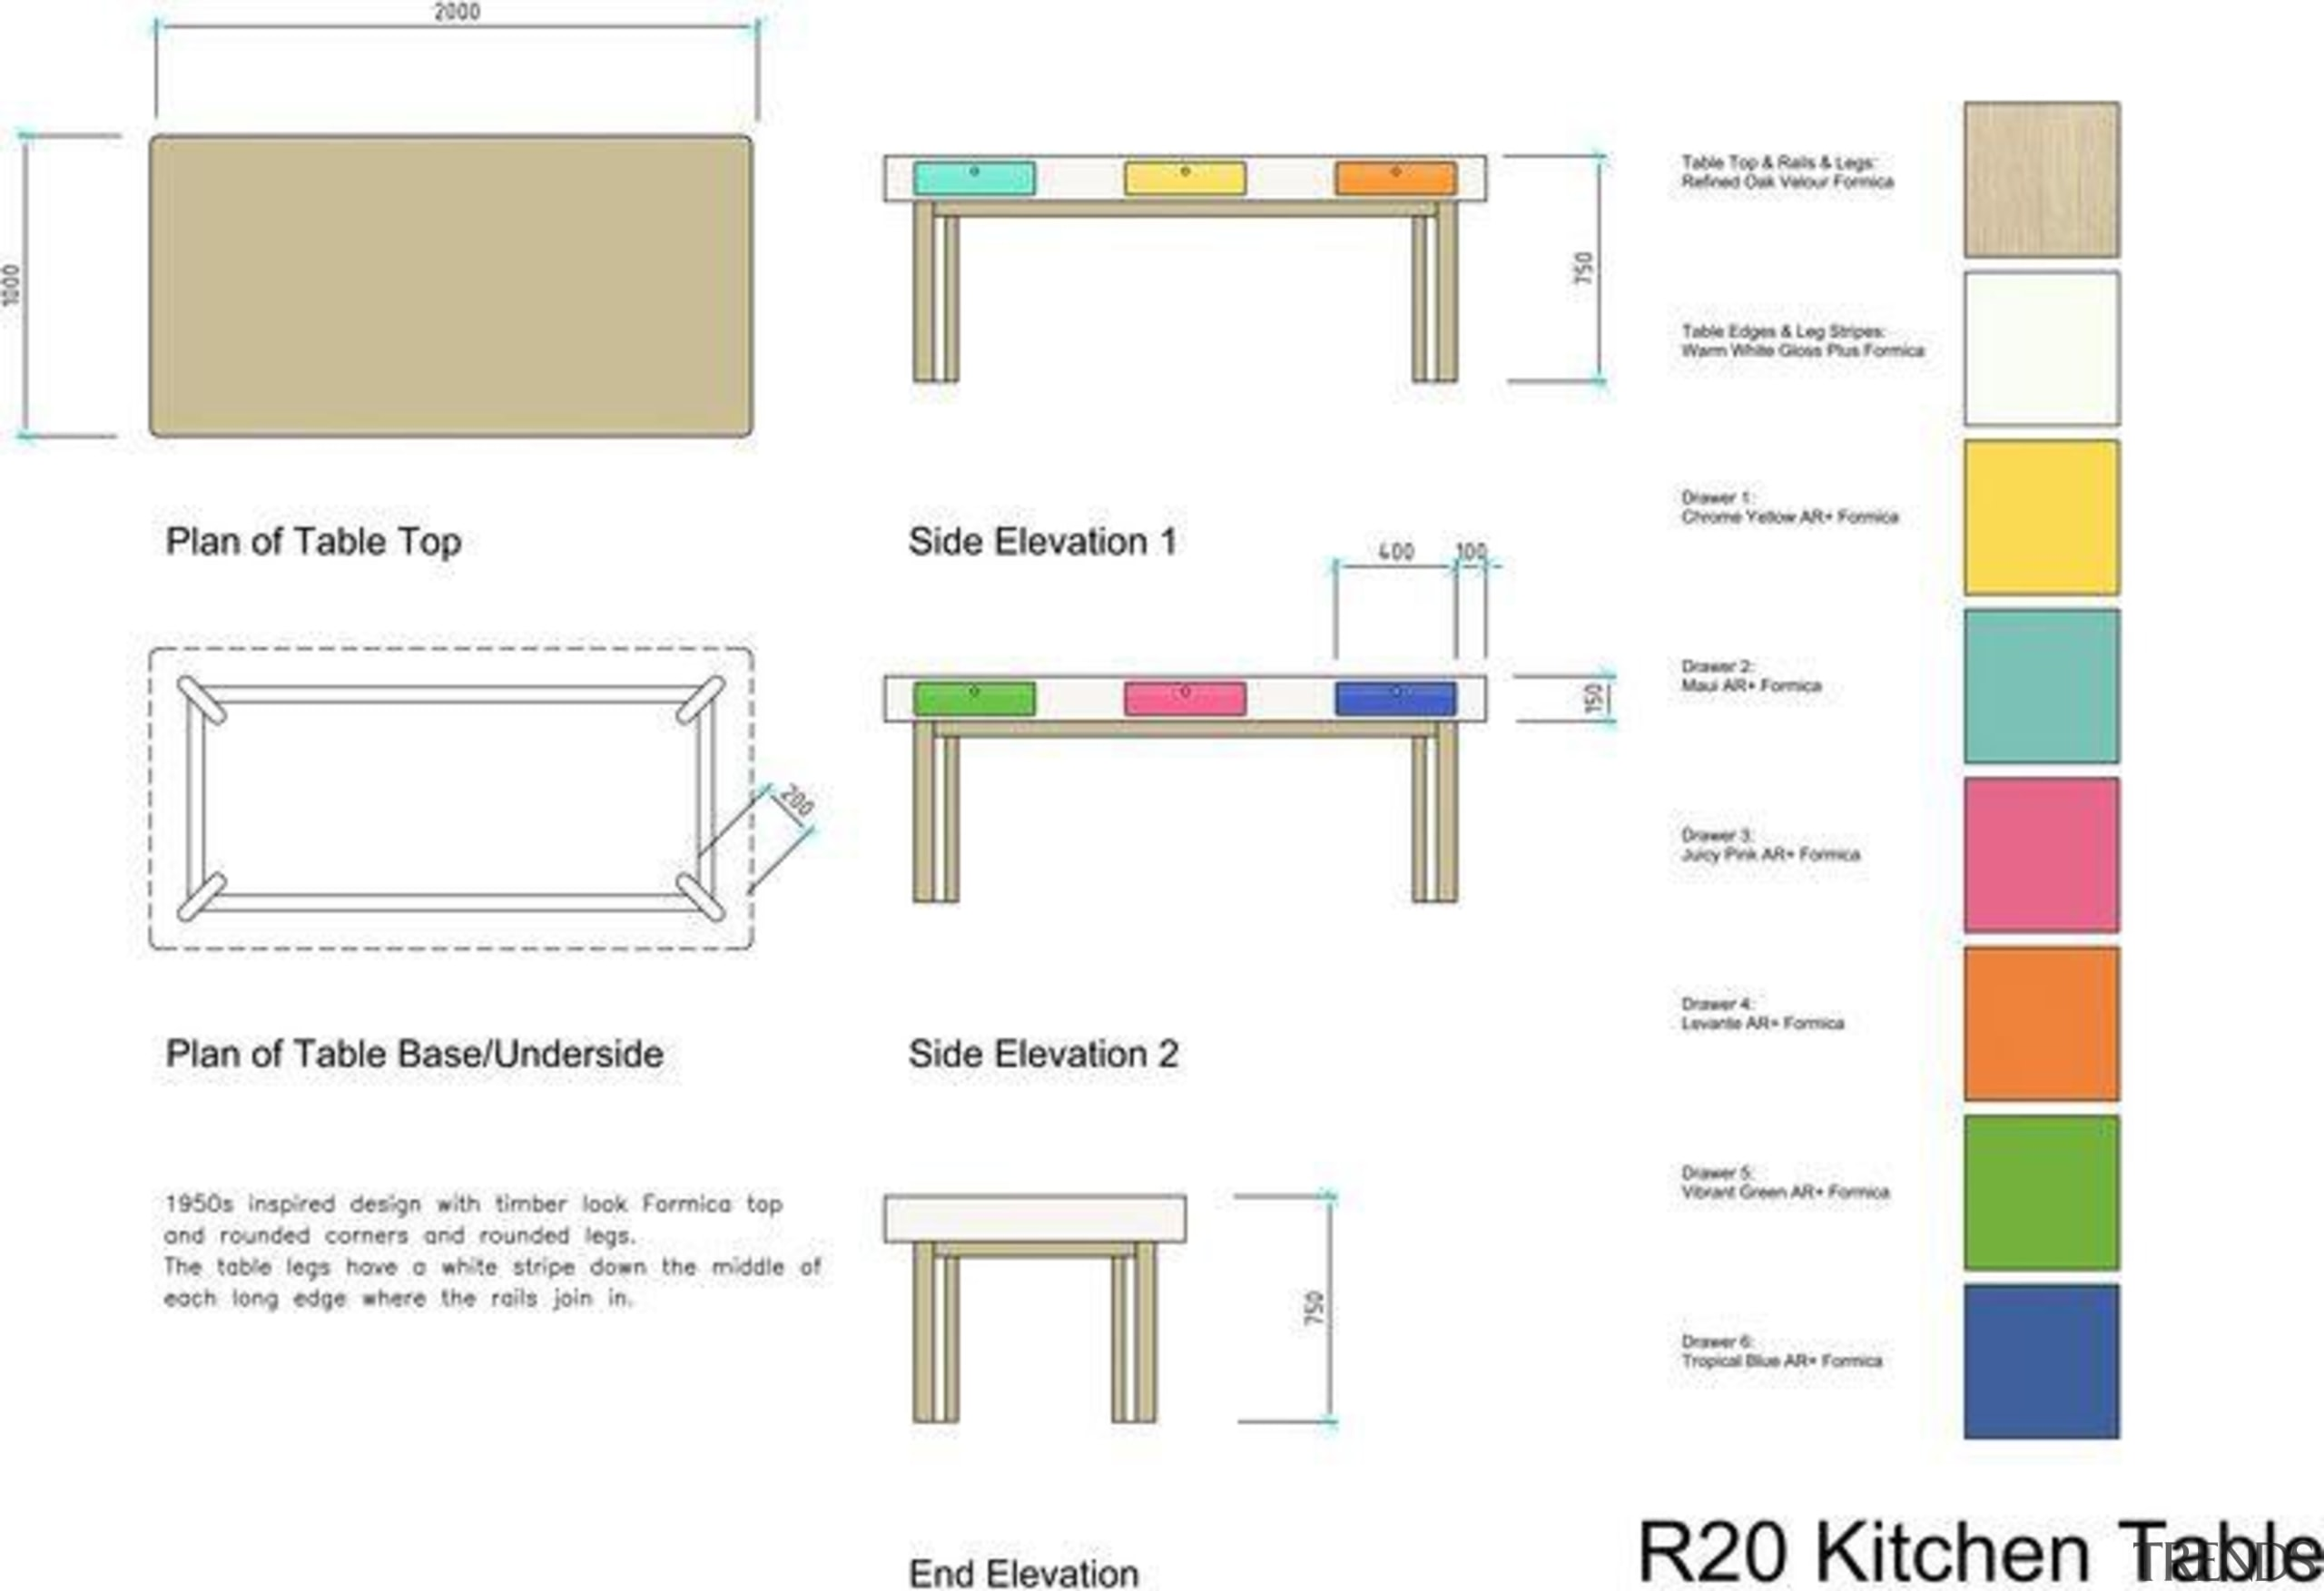 by Rachel Venables - R20 Kitchen Table - angle, area, design, diagram, font, furniture, line, product, product design, rectangle, square, text, white